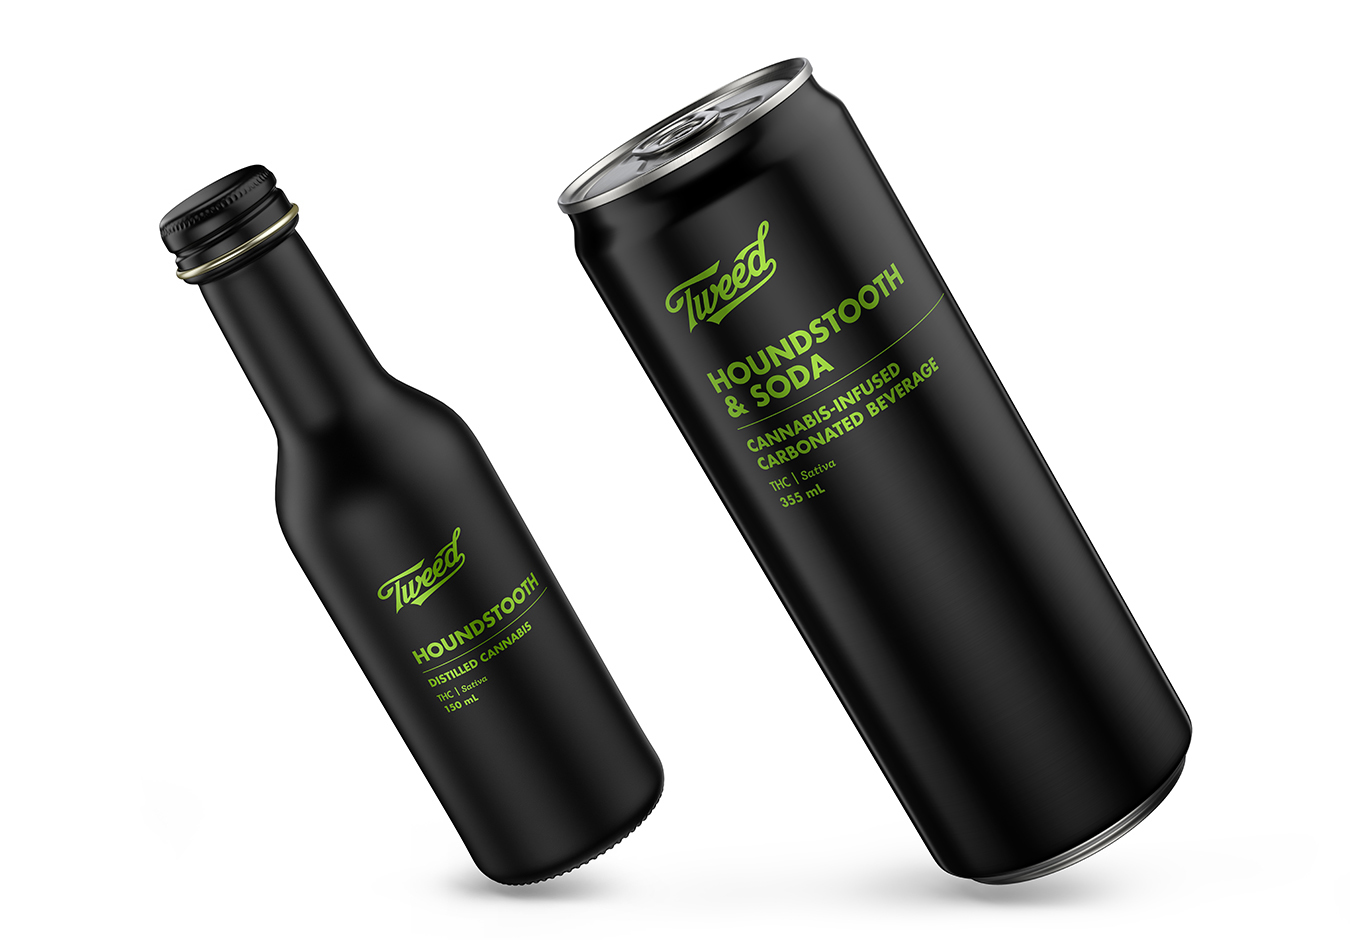 Houndstooth cannabis-infused drinks in both Ready-to-Drink and Distilled Cannabis form